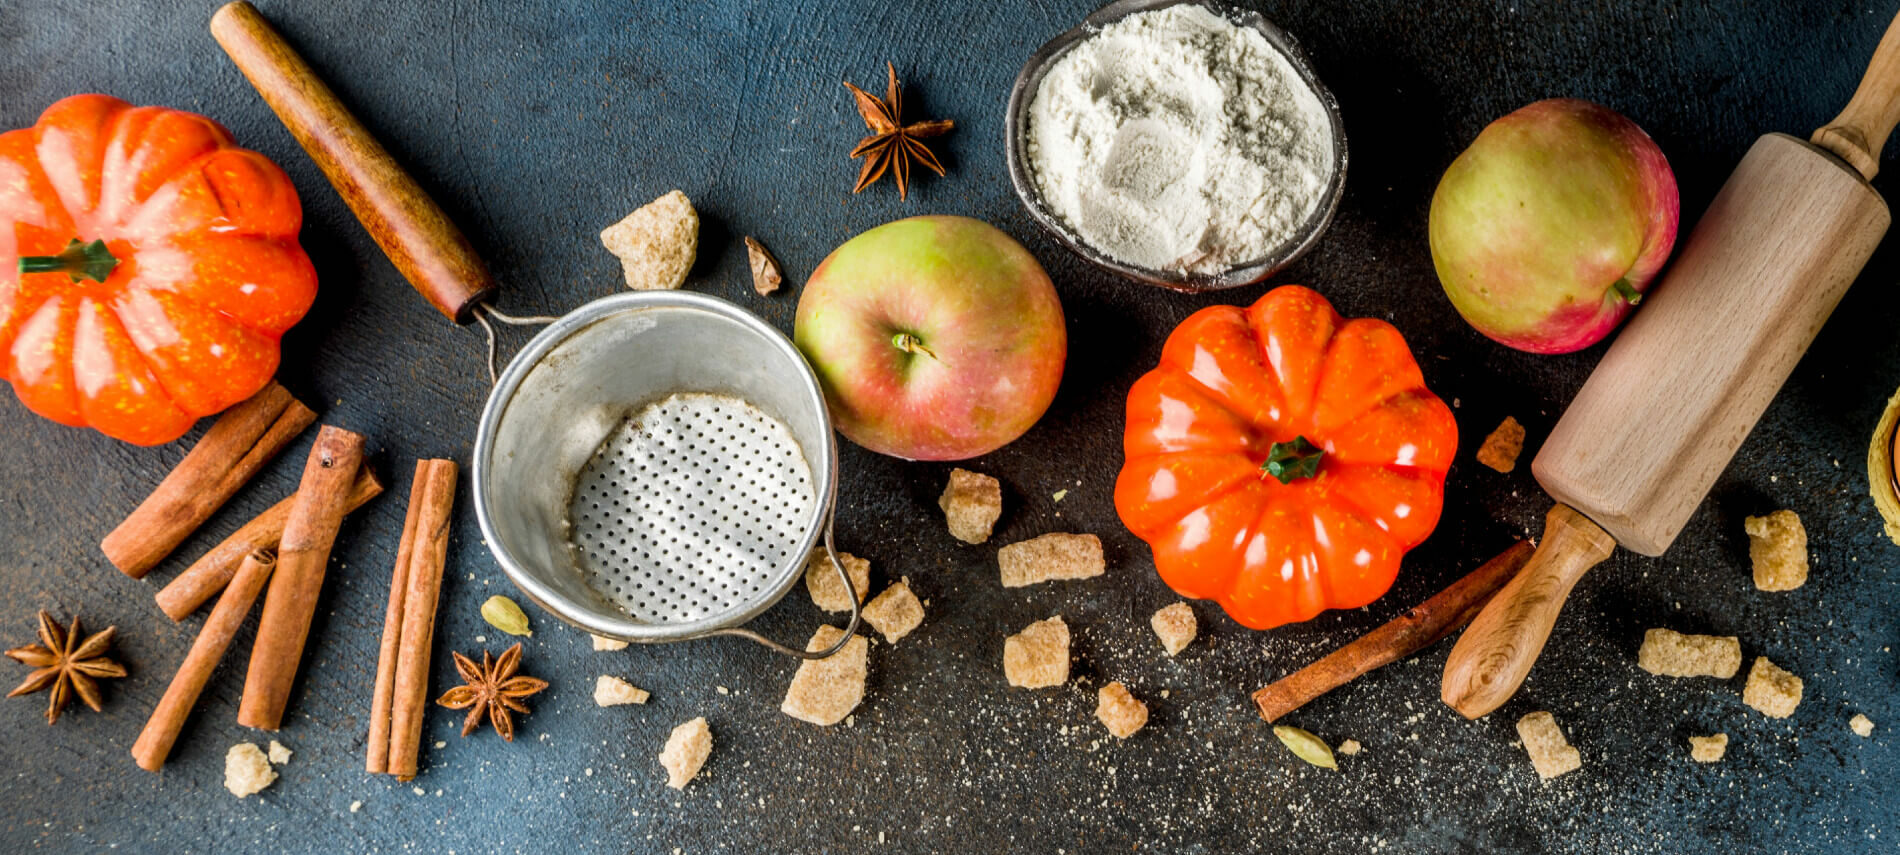 Fall Baking ingredients of apples, pumpkins, flour, and spices